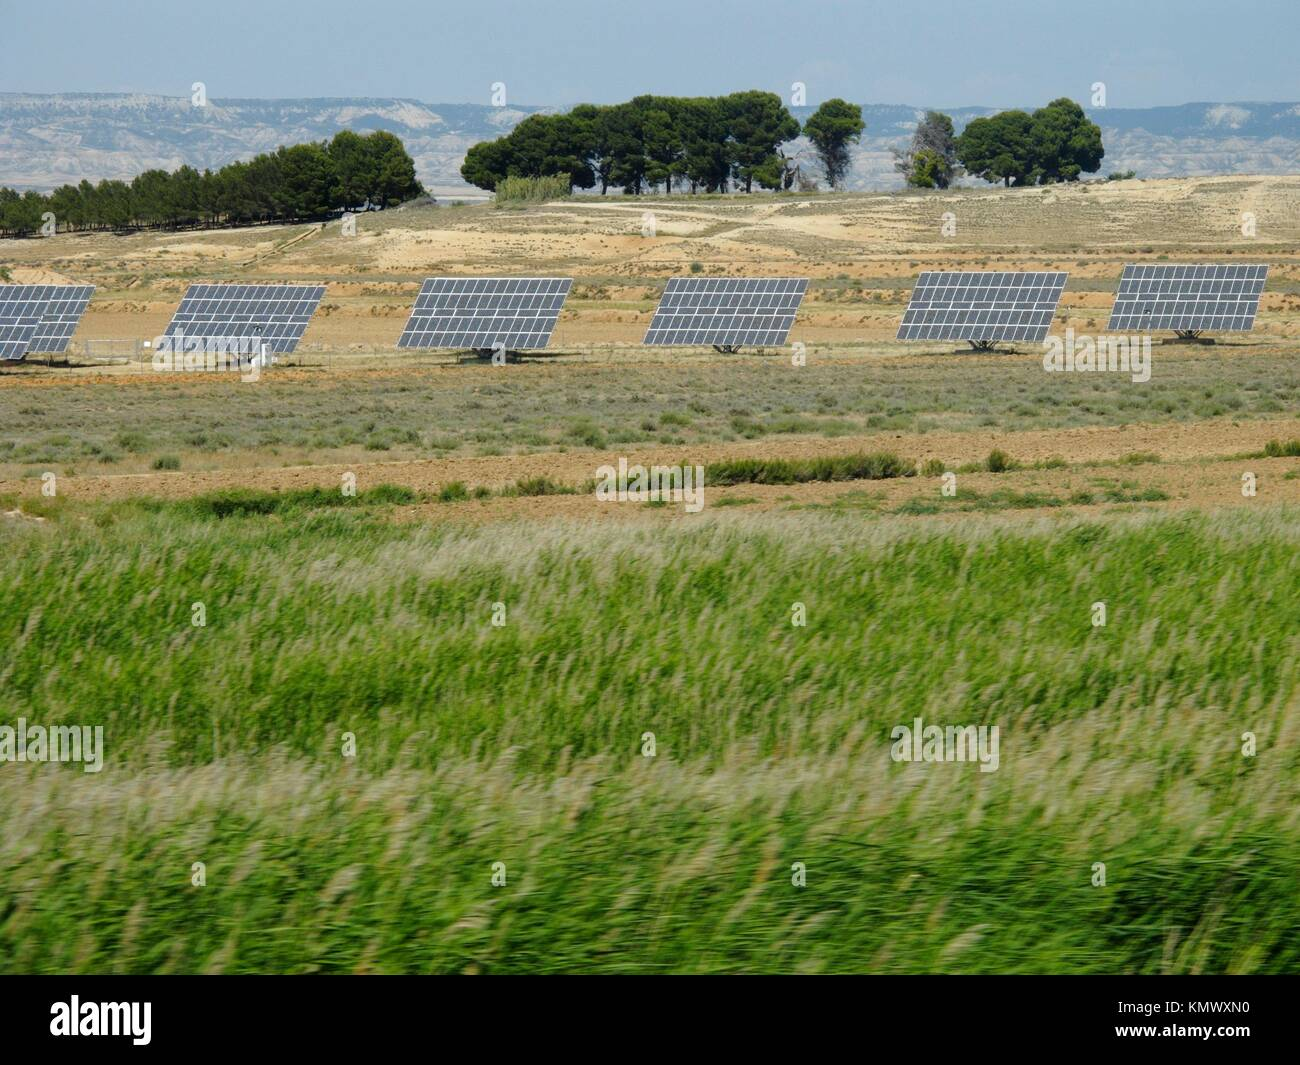 solar cells in the fields of Navarra - Stock Image